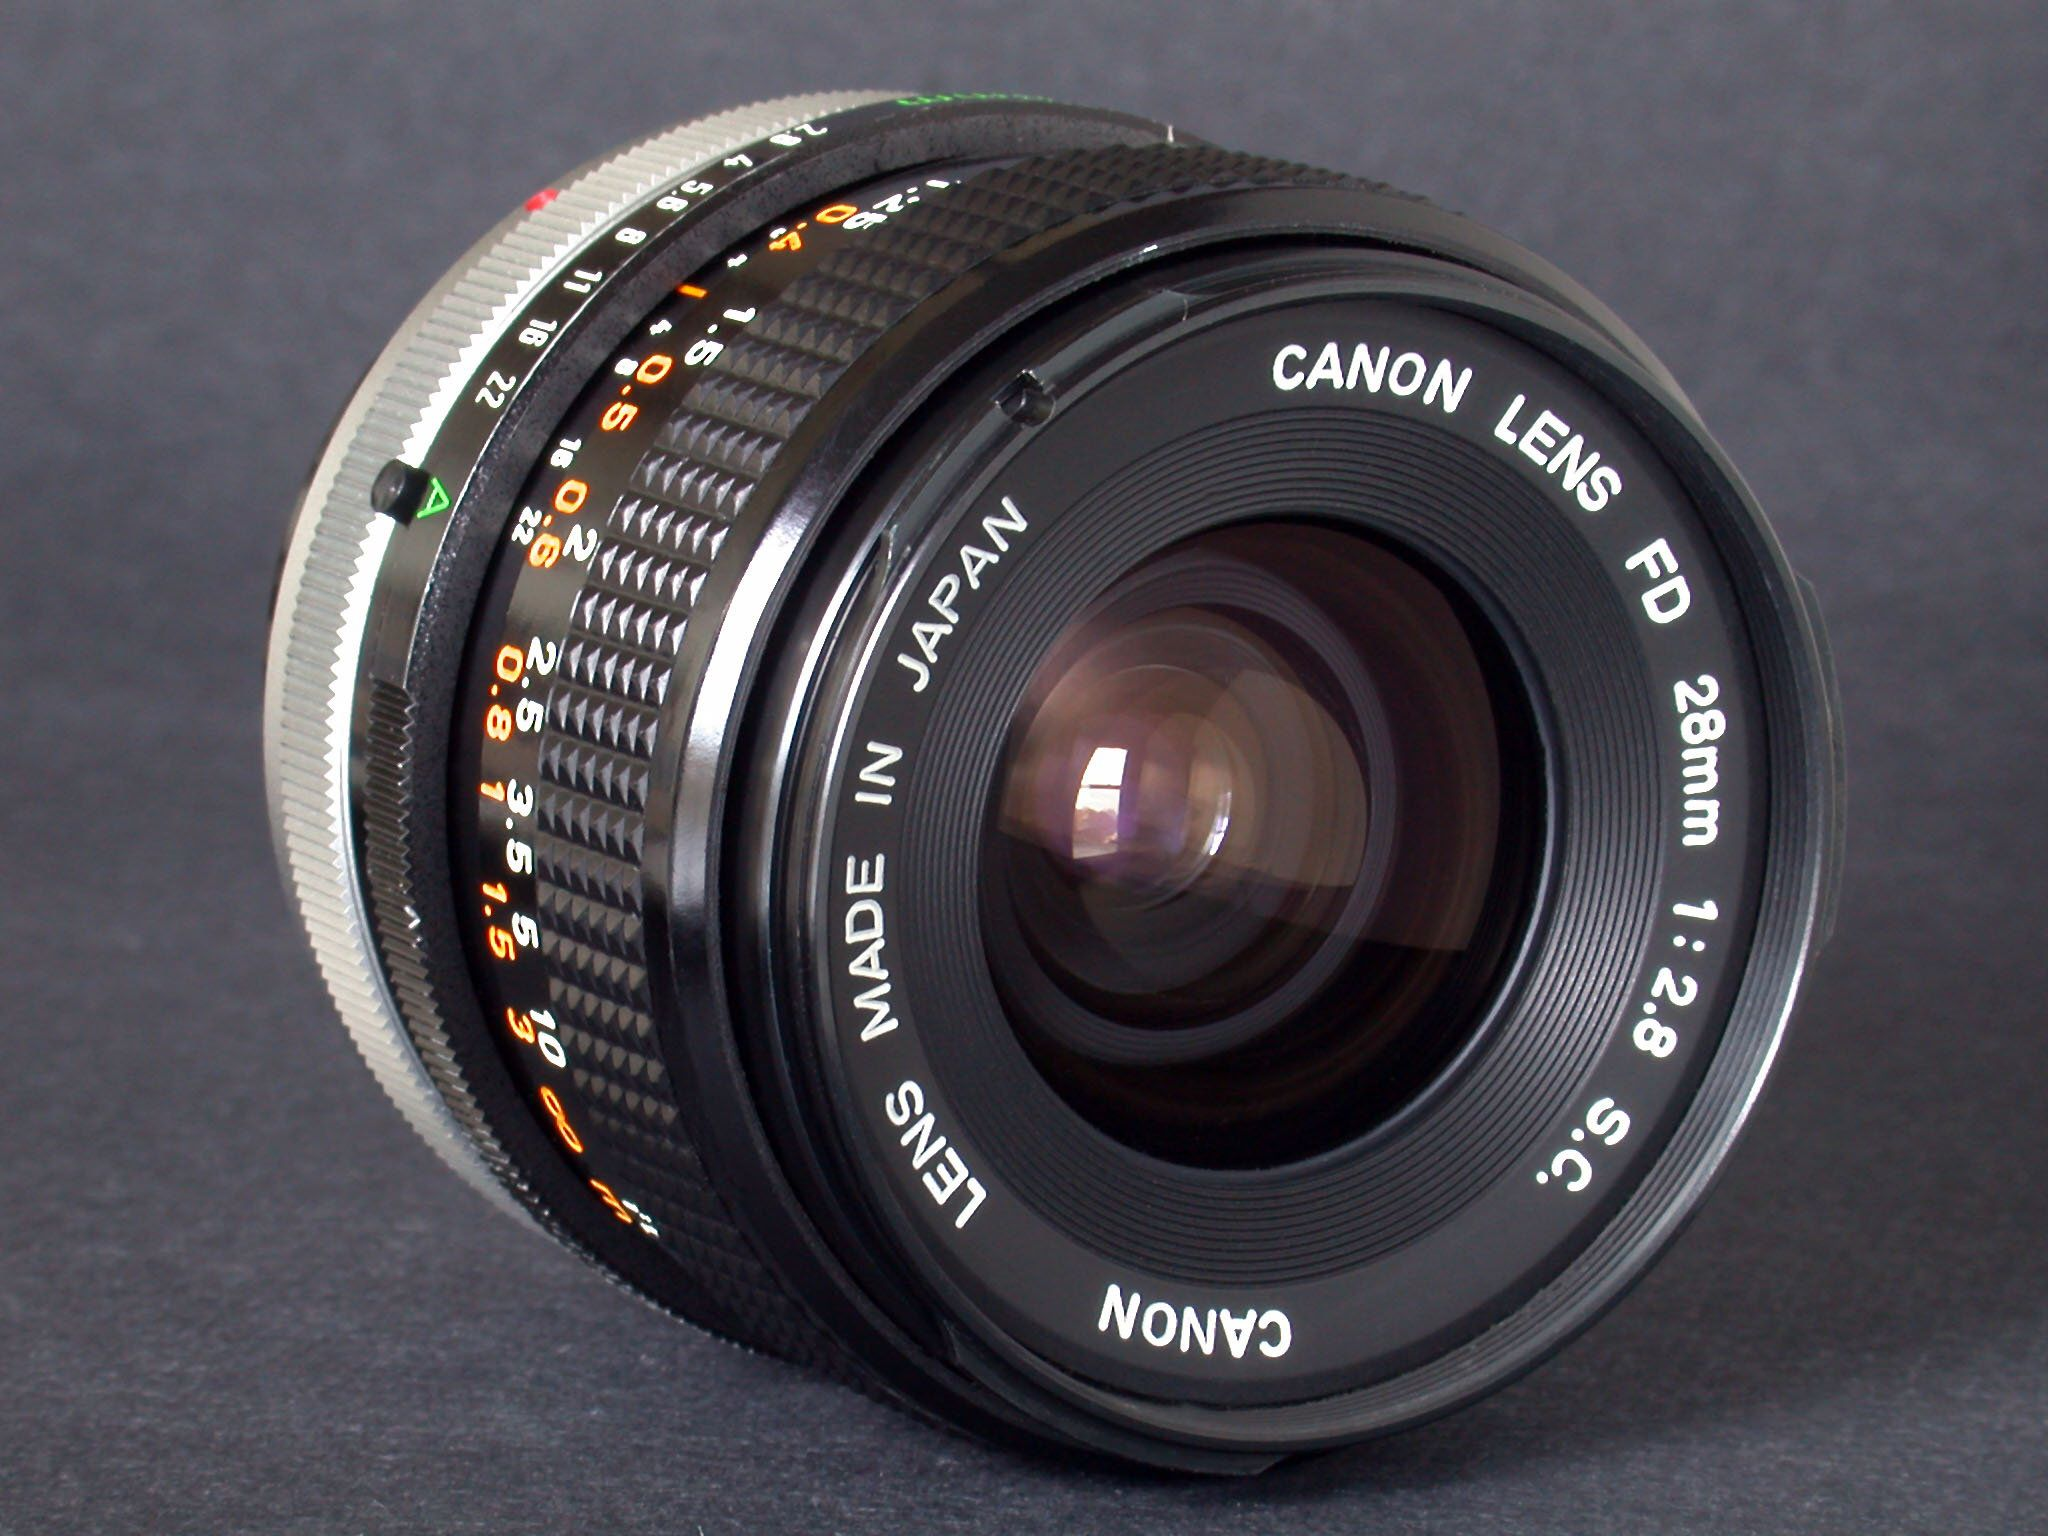 Canon Fd 28mm F 2 8 S C Wa Wide Angle Prime Lens 4 Students Etsy Prime Lens Wide Angle This Or That Questions